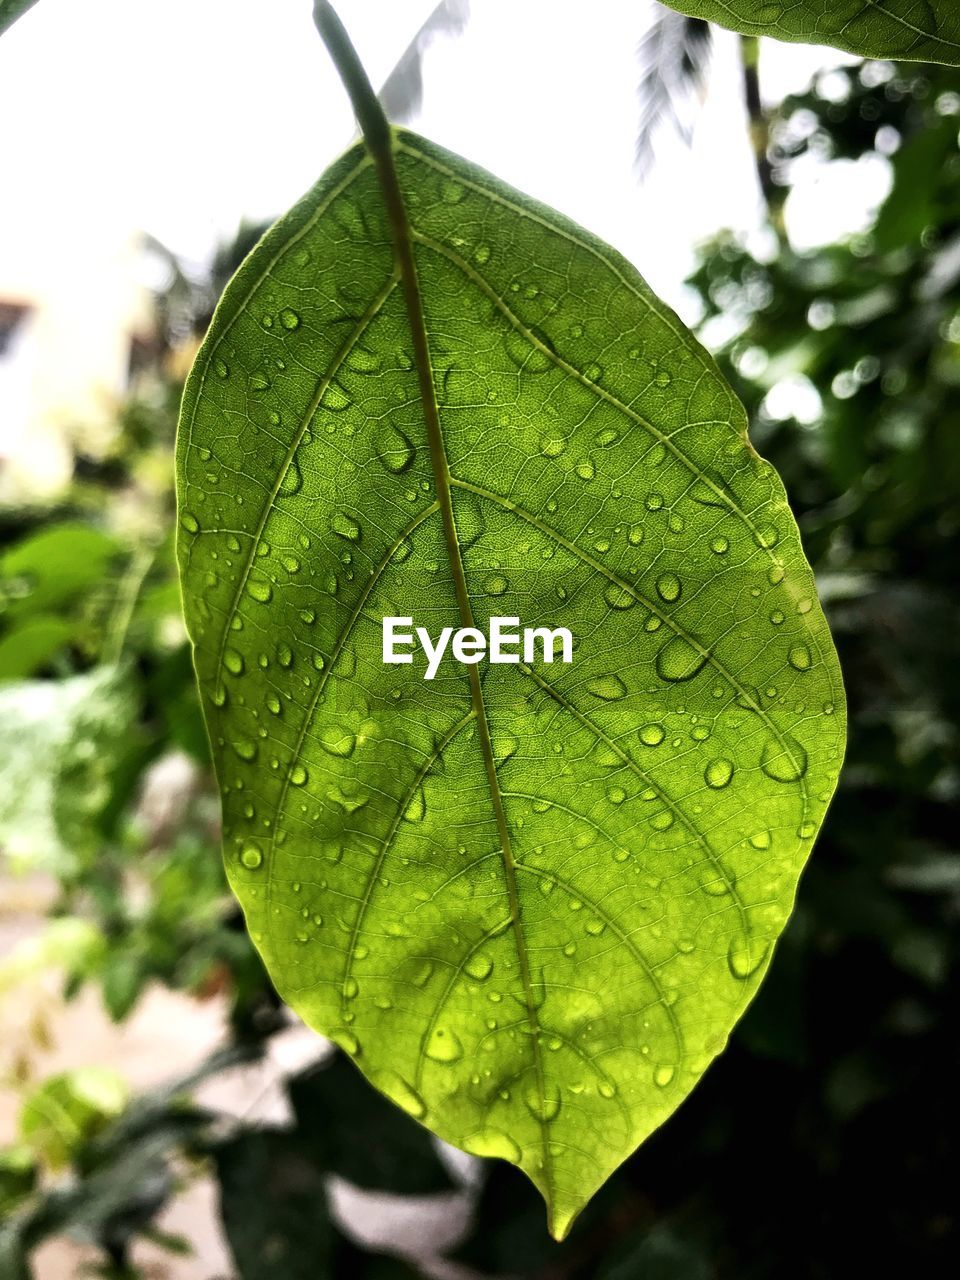 leaf, plant part, drop, green color, close-up, wet, nature, focus on foreground, plant, water, day, beauty in nature, growth, no people, outdoors, freshness, leaf vein, rain, dew, raindrop, purity, leaves